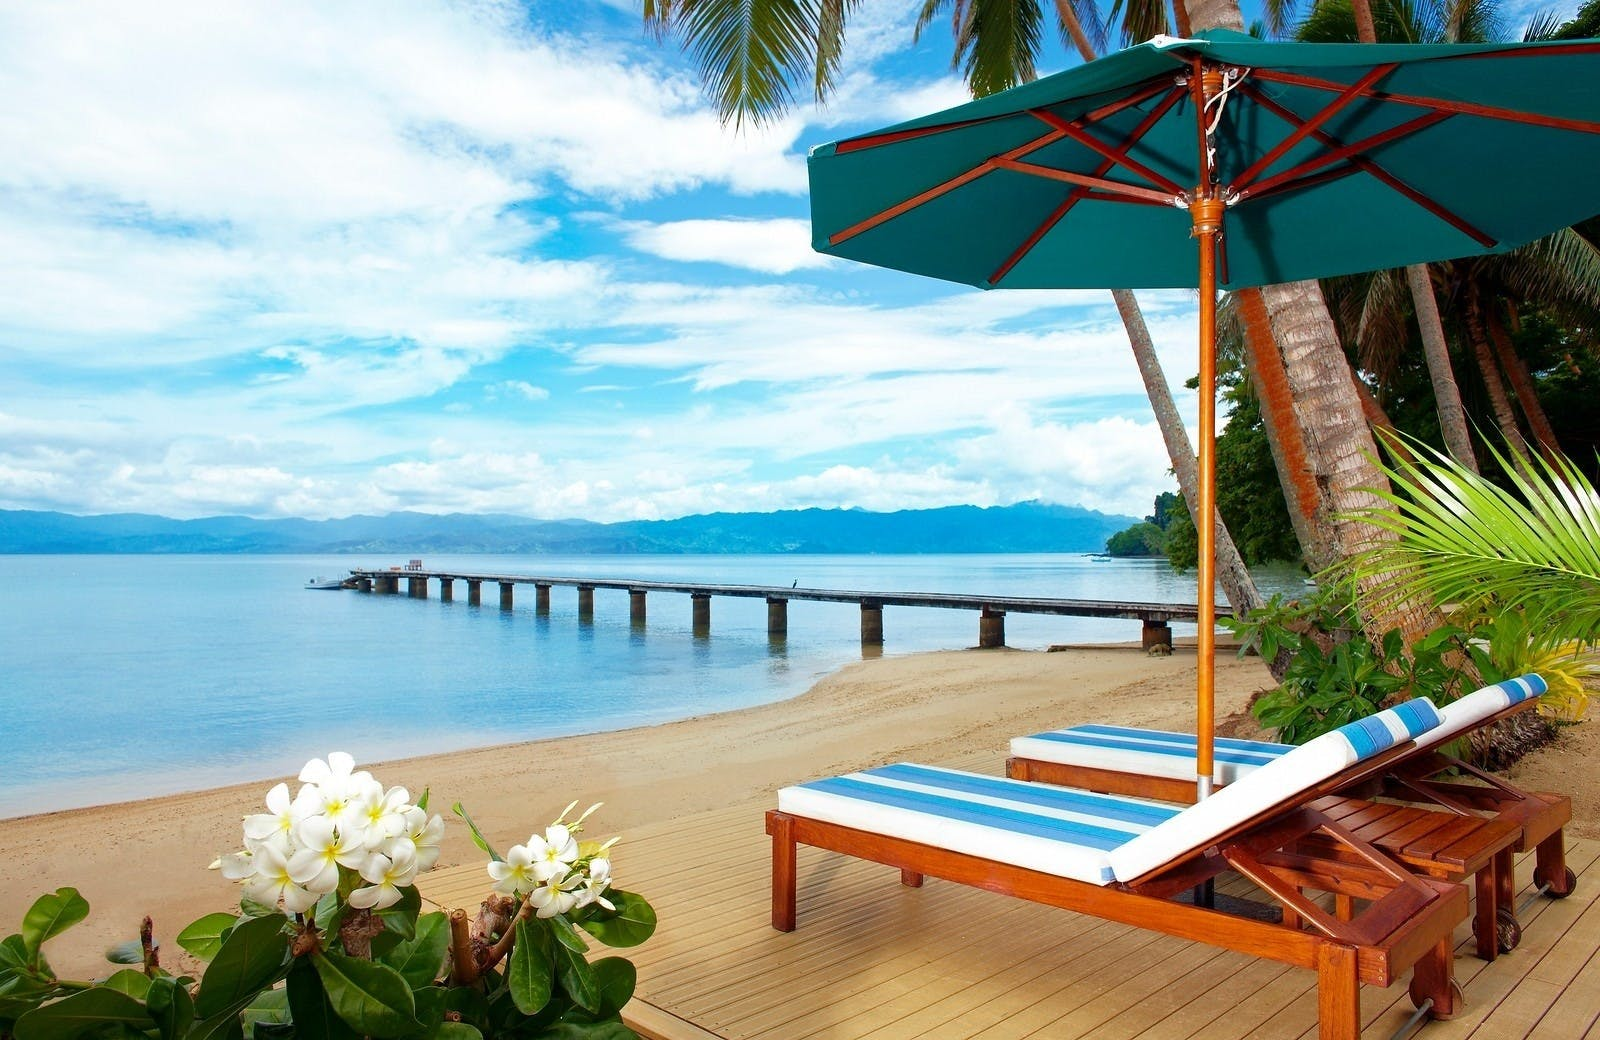 Beach Deck at Jean-Michel Cousteau Resort, Fiji